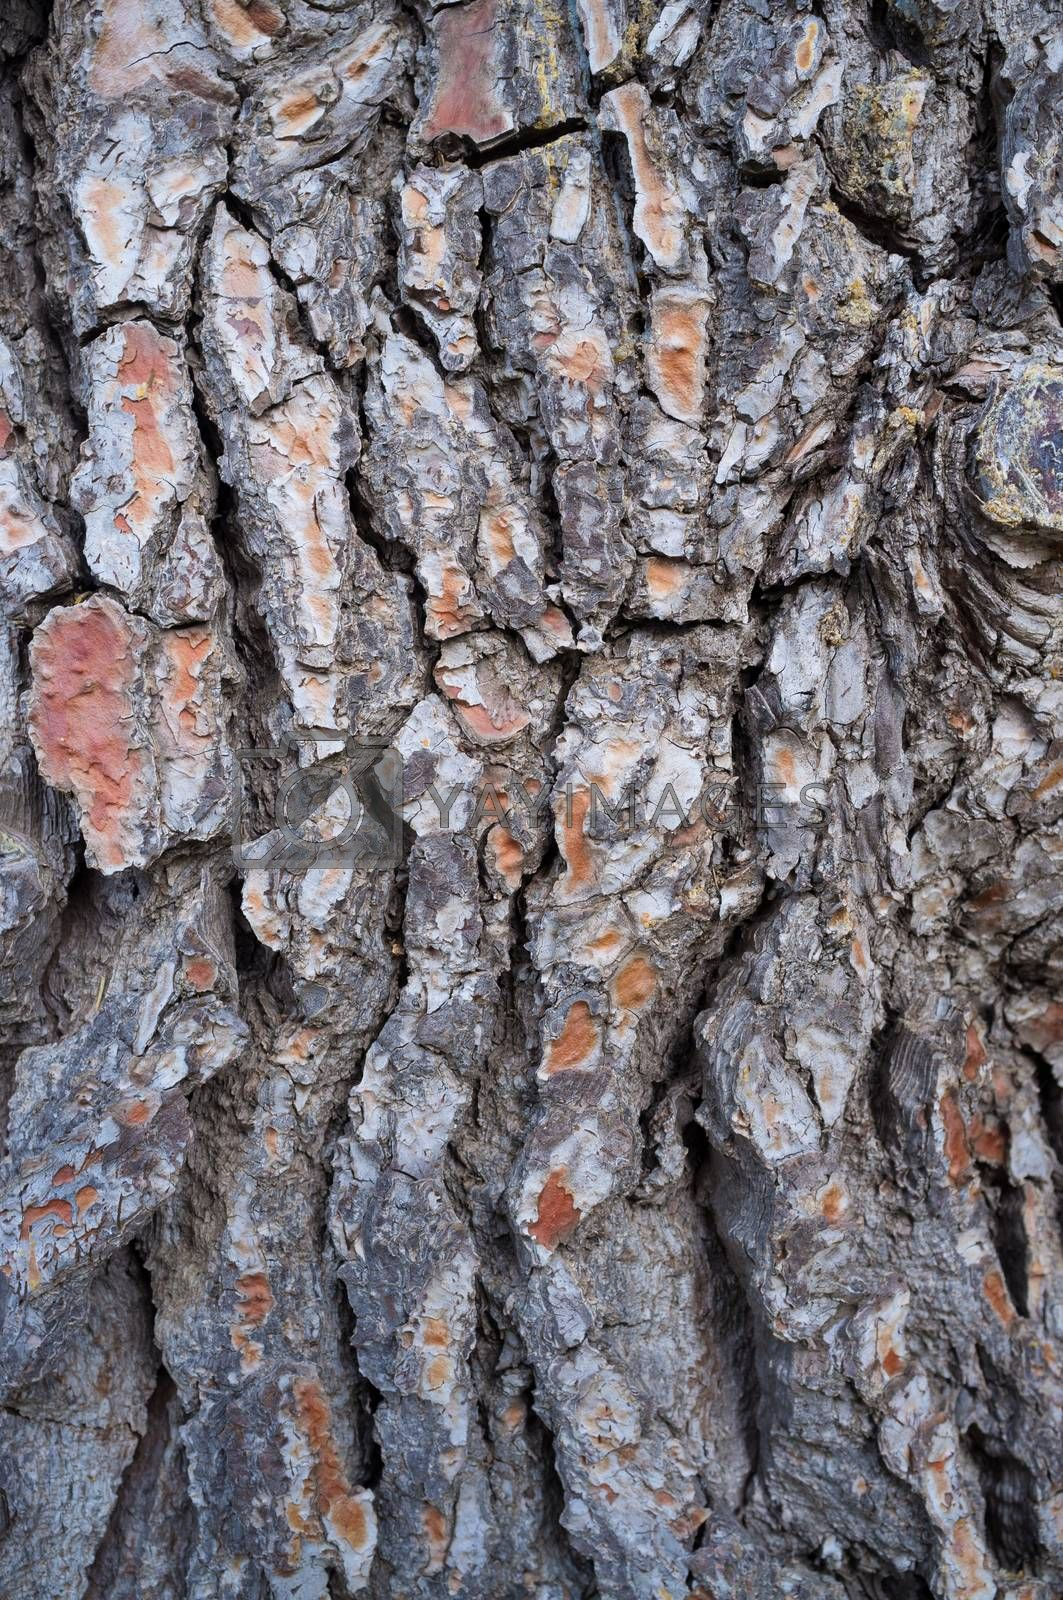 Full frame take of coarse pine tree bark